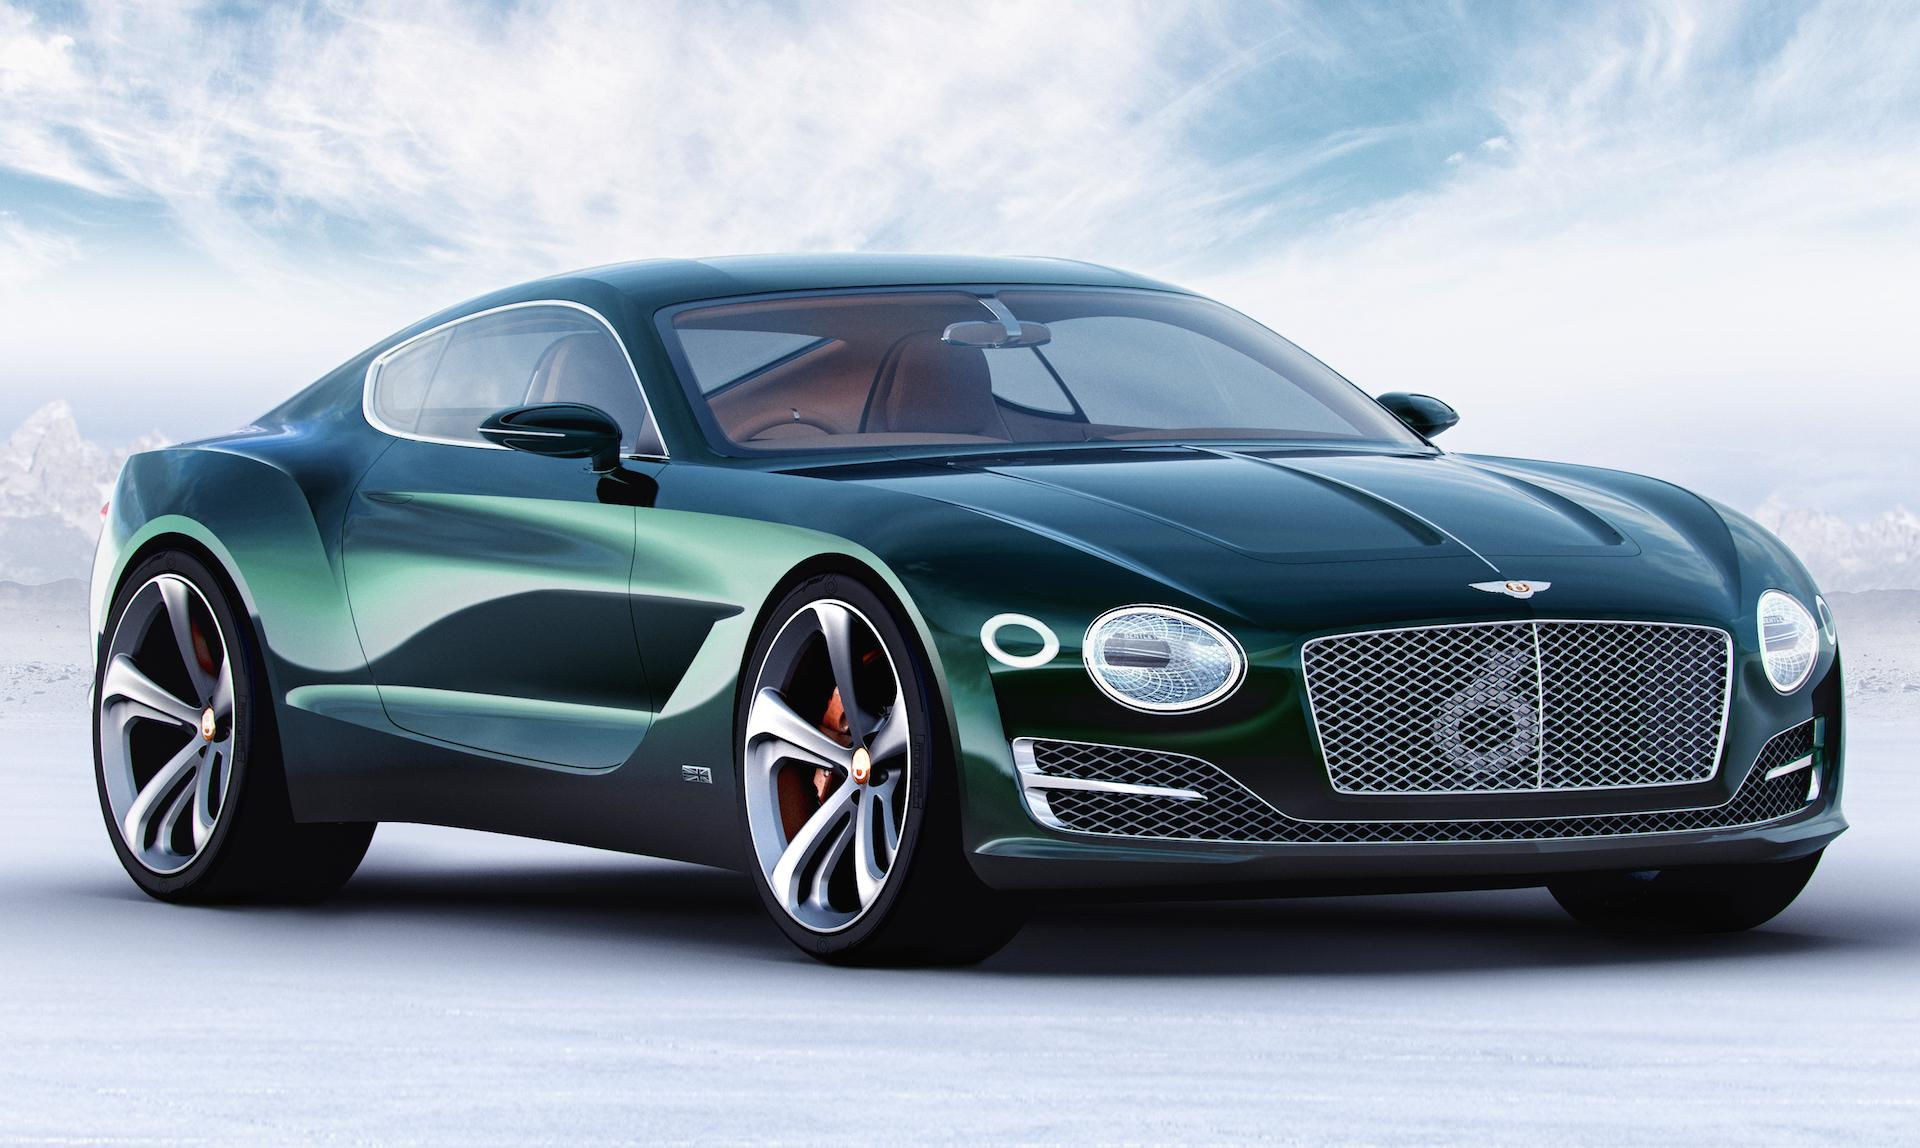 Bentley working on Tesla-trouncing EV for eco-friendly super-rich, report says